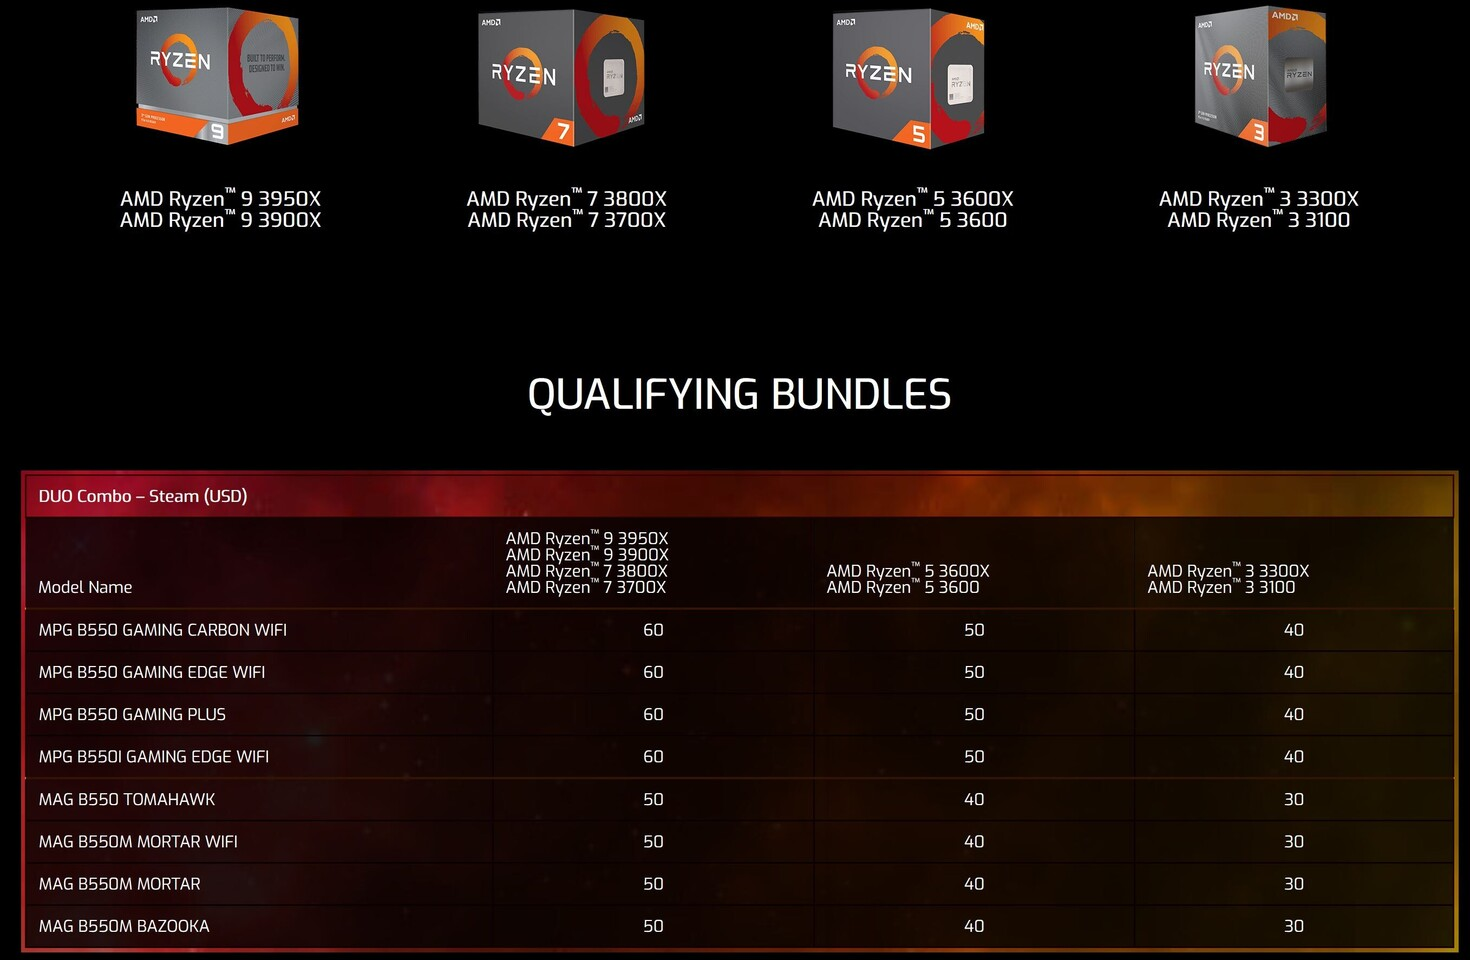 Msi Announces B550 Motherboard 3rd Gen Ryzen Bundles Up To 60 Steam Wallet Credit Techpowerup